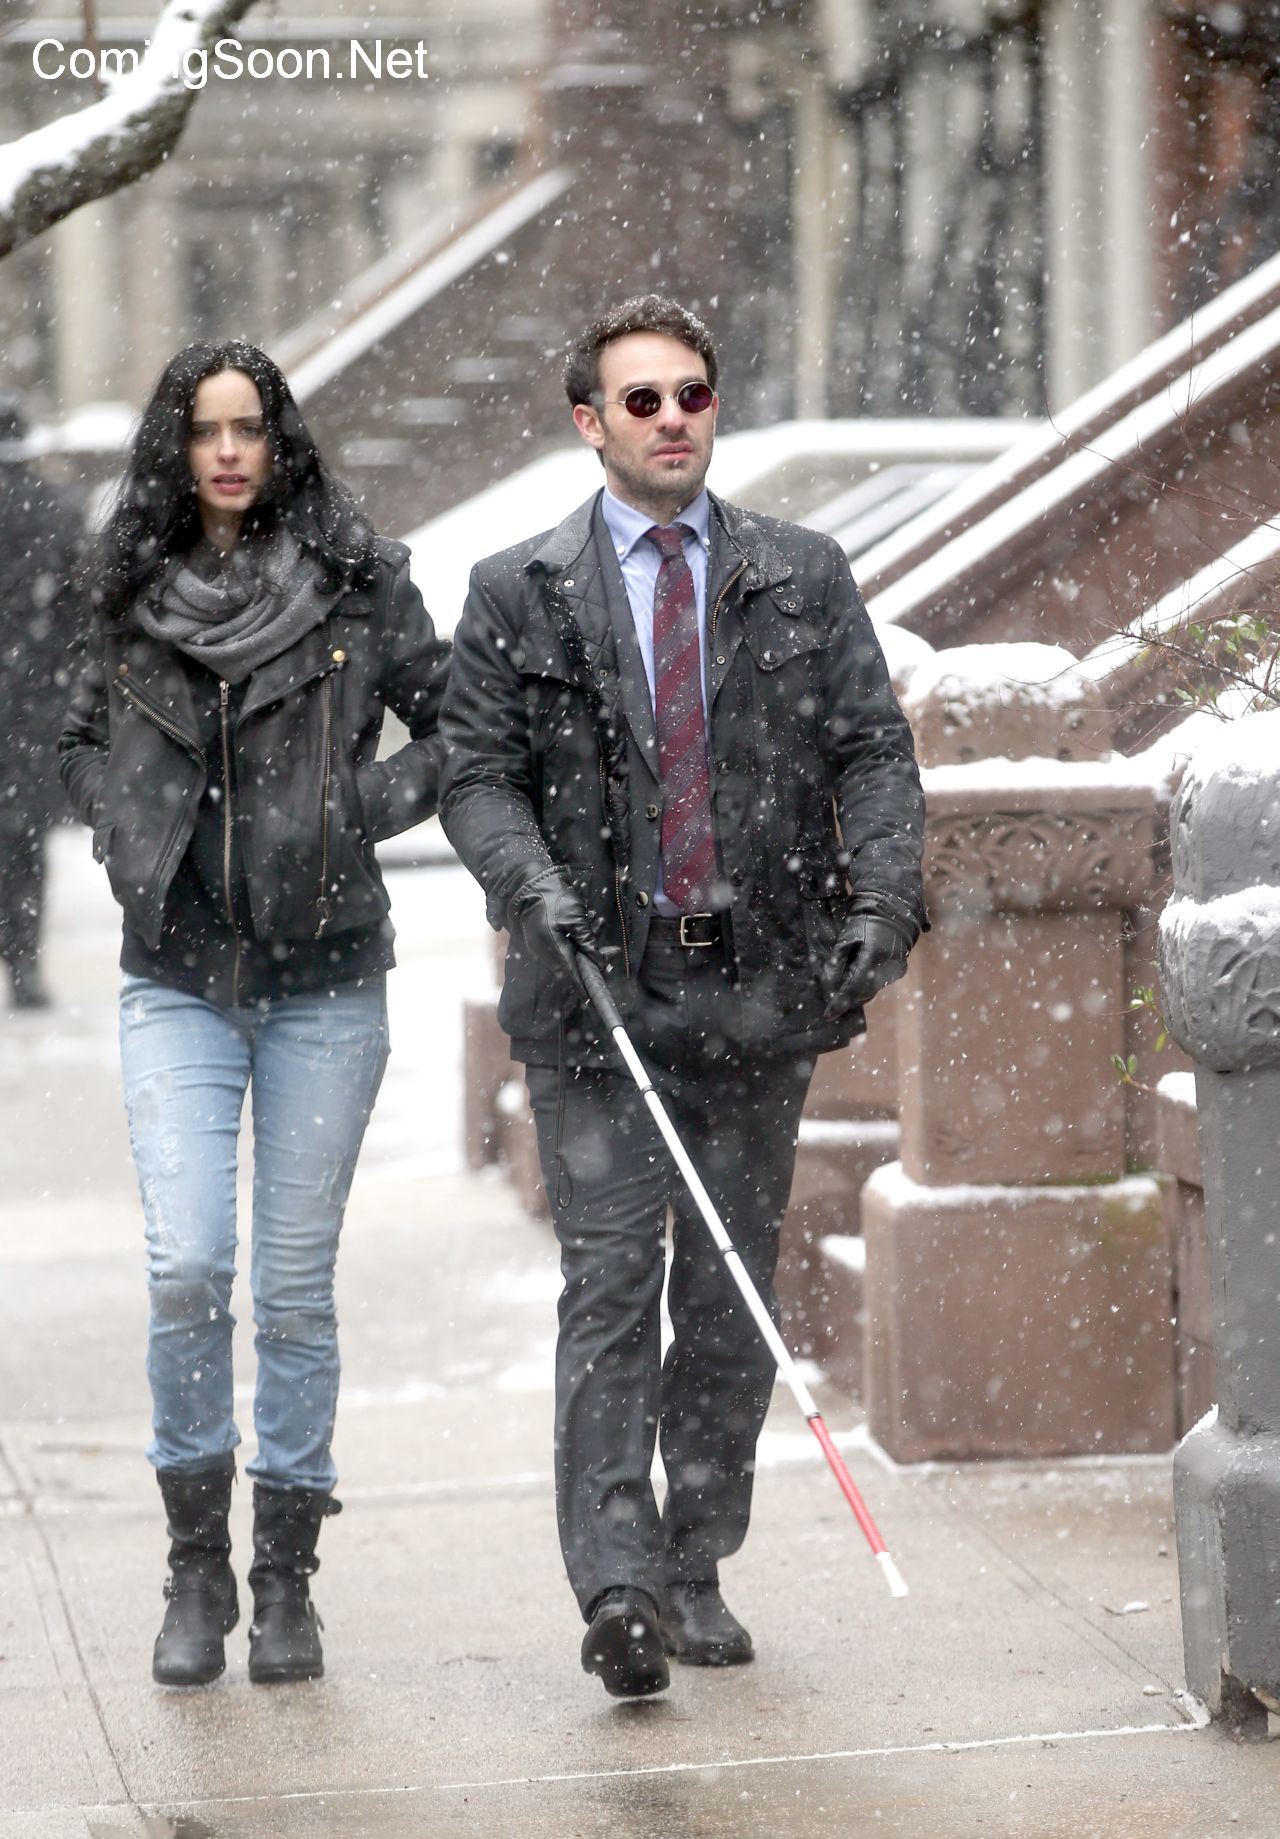 Matt Murdock & Jessica Jones (Marvel's The Defenders)